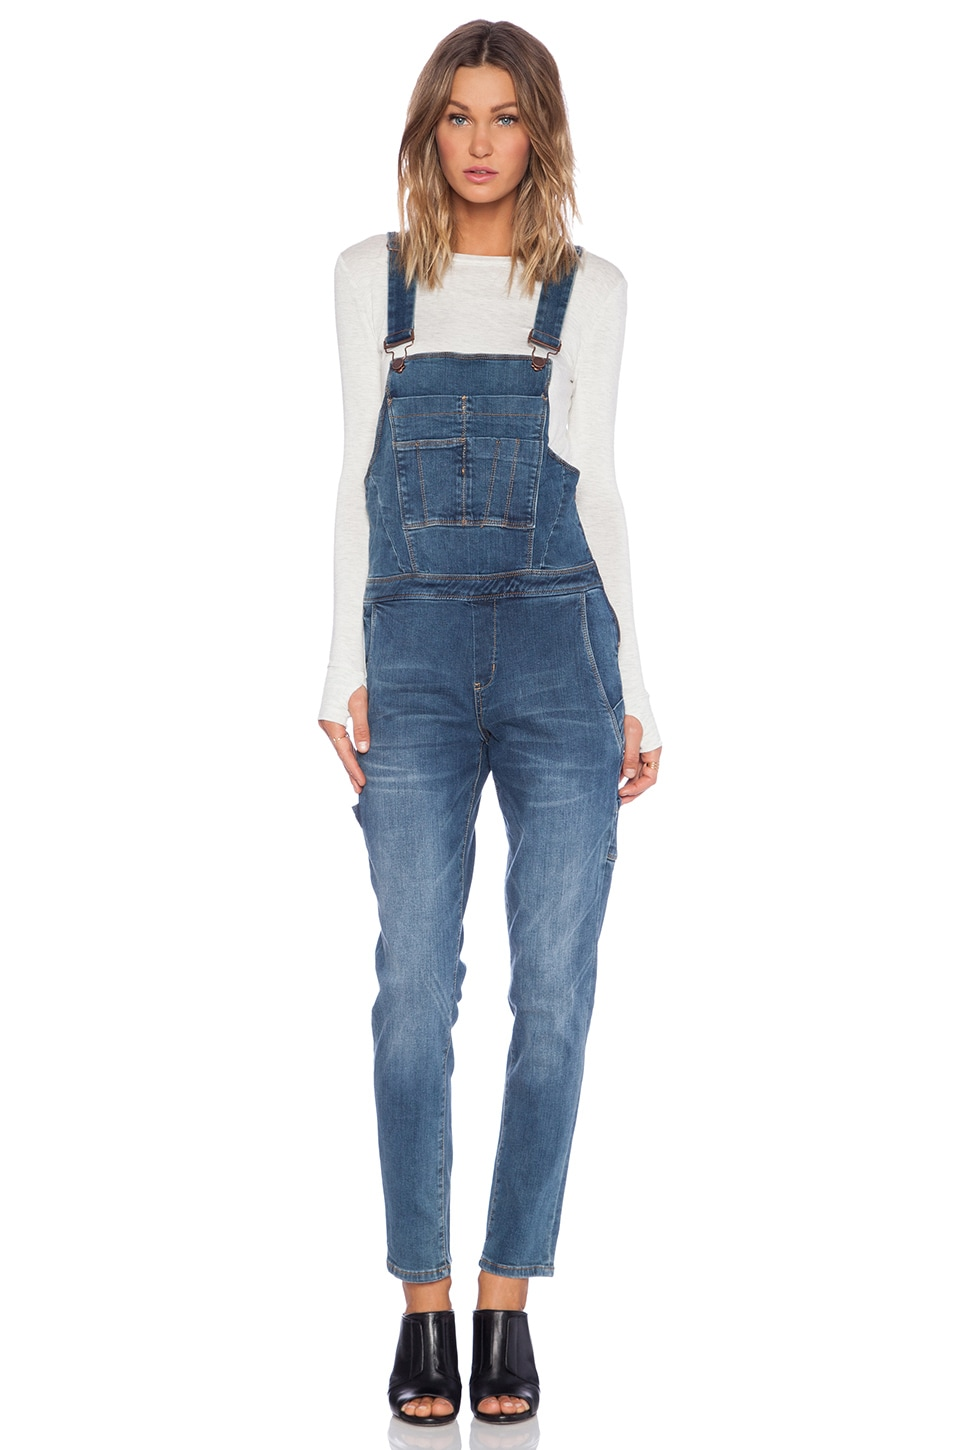 BLANKNYC Overall in Rolling In The Hay